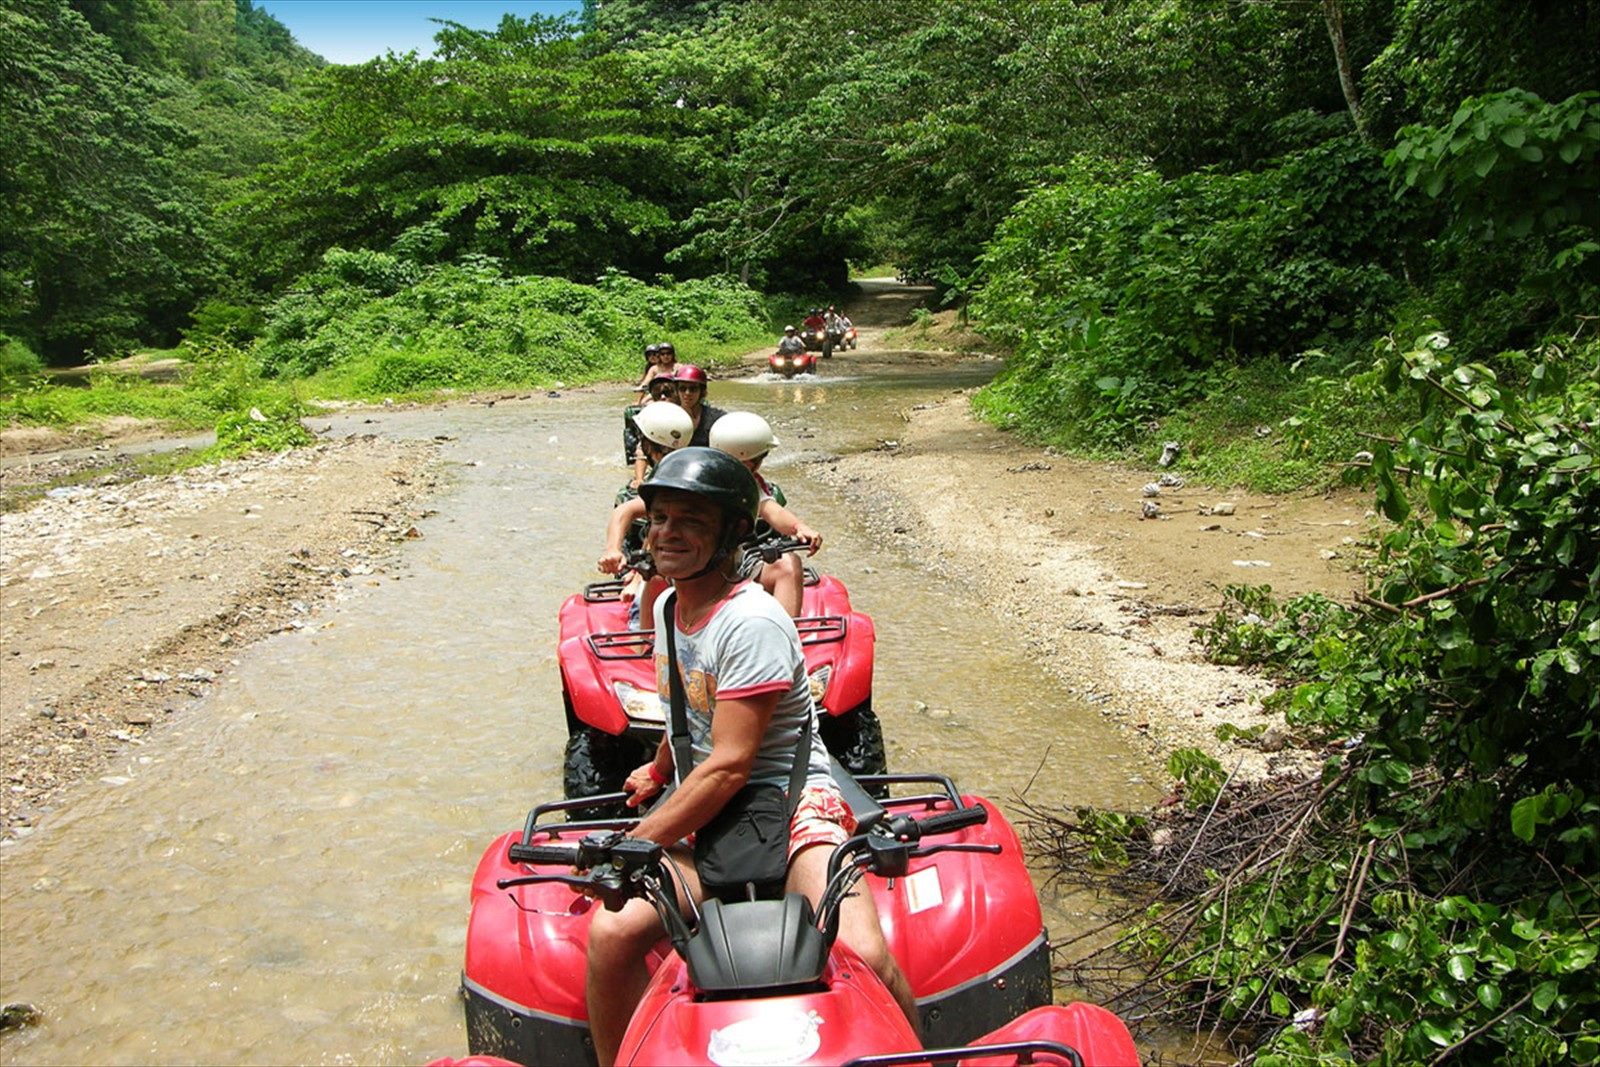 ATV Tour Operator in Las Terrenas, Samana.